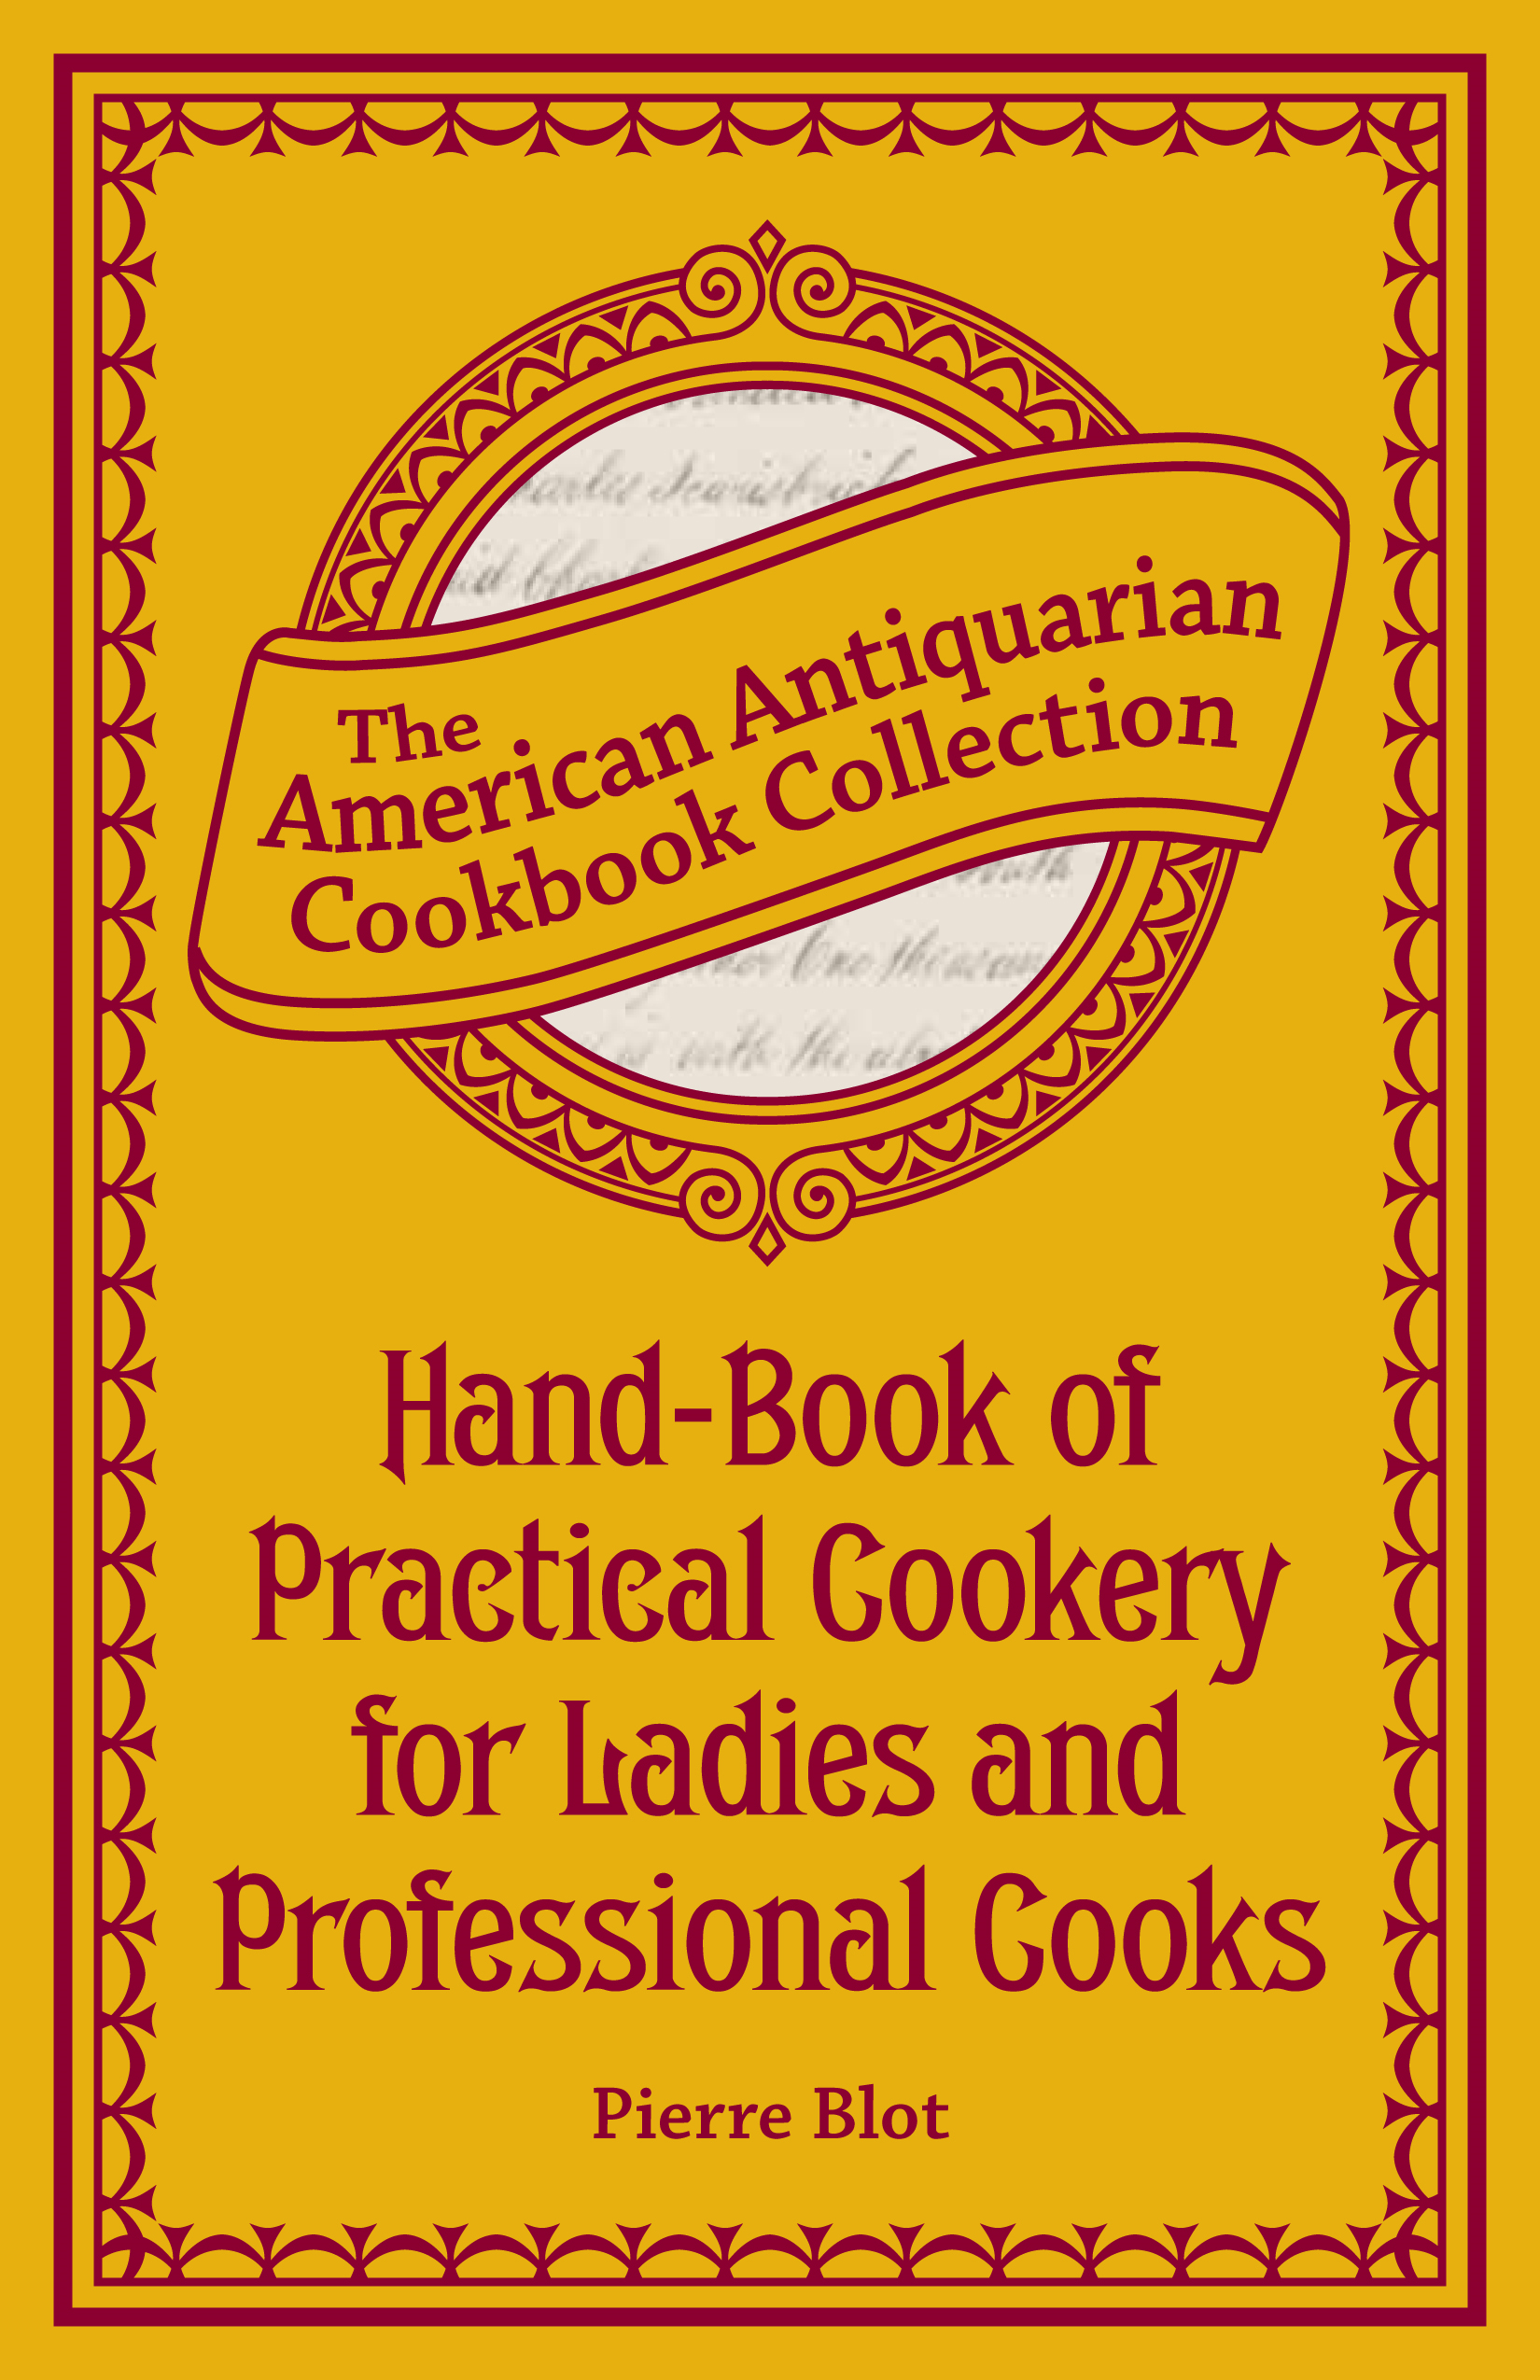 Hand-Book of Practical Cookery for Ladies and Professional Cooks